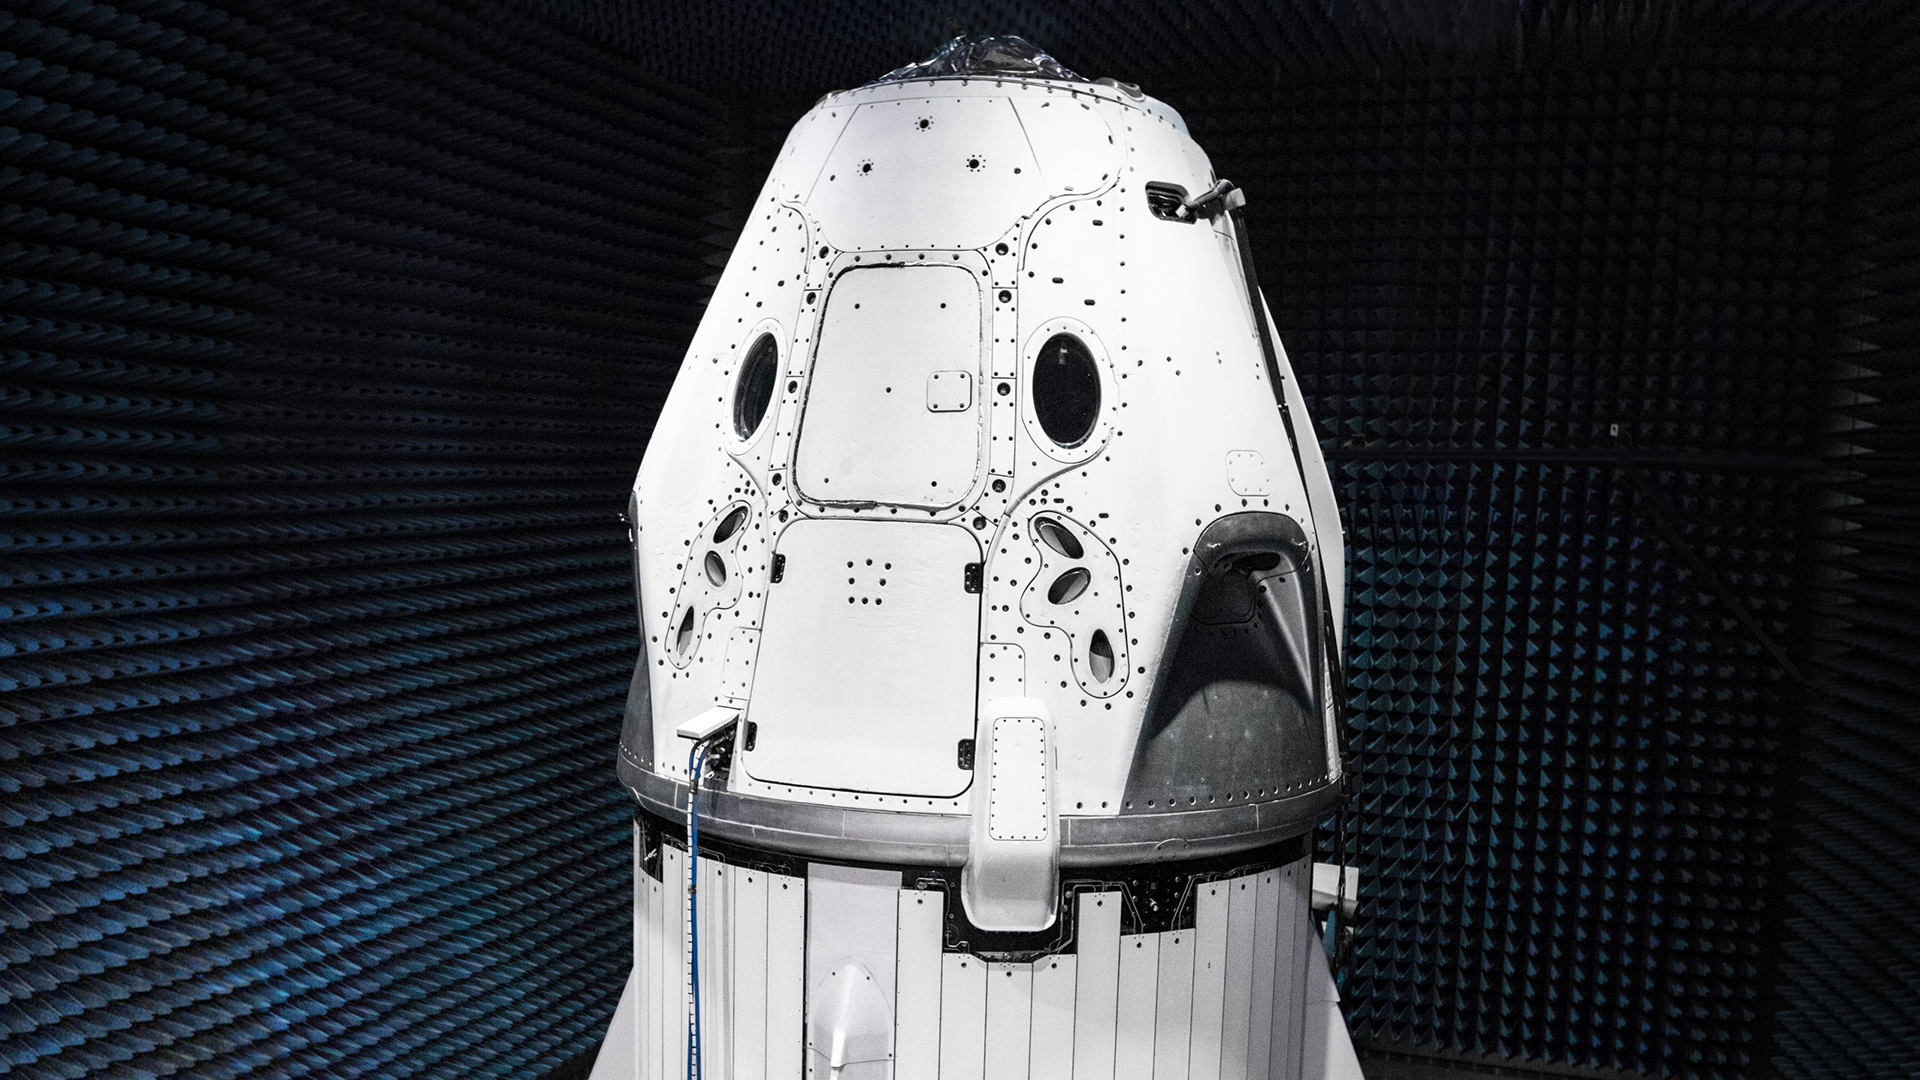 Forum on this topic: SpaceX Plan To Make New Sexy Spacesuits, spacex-plan-to-make-new-sexy-spacesuits/